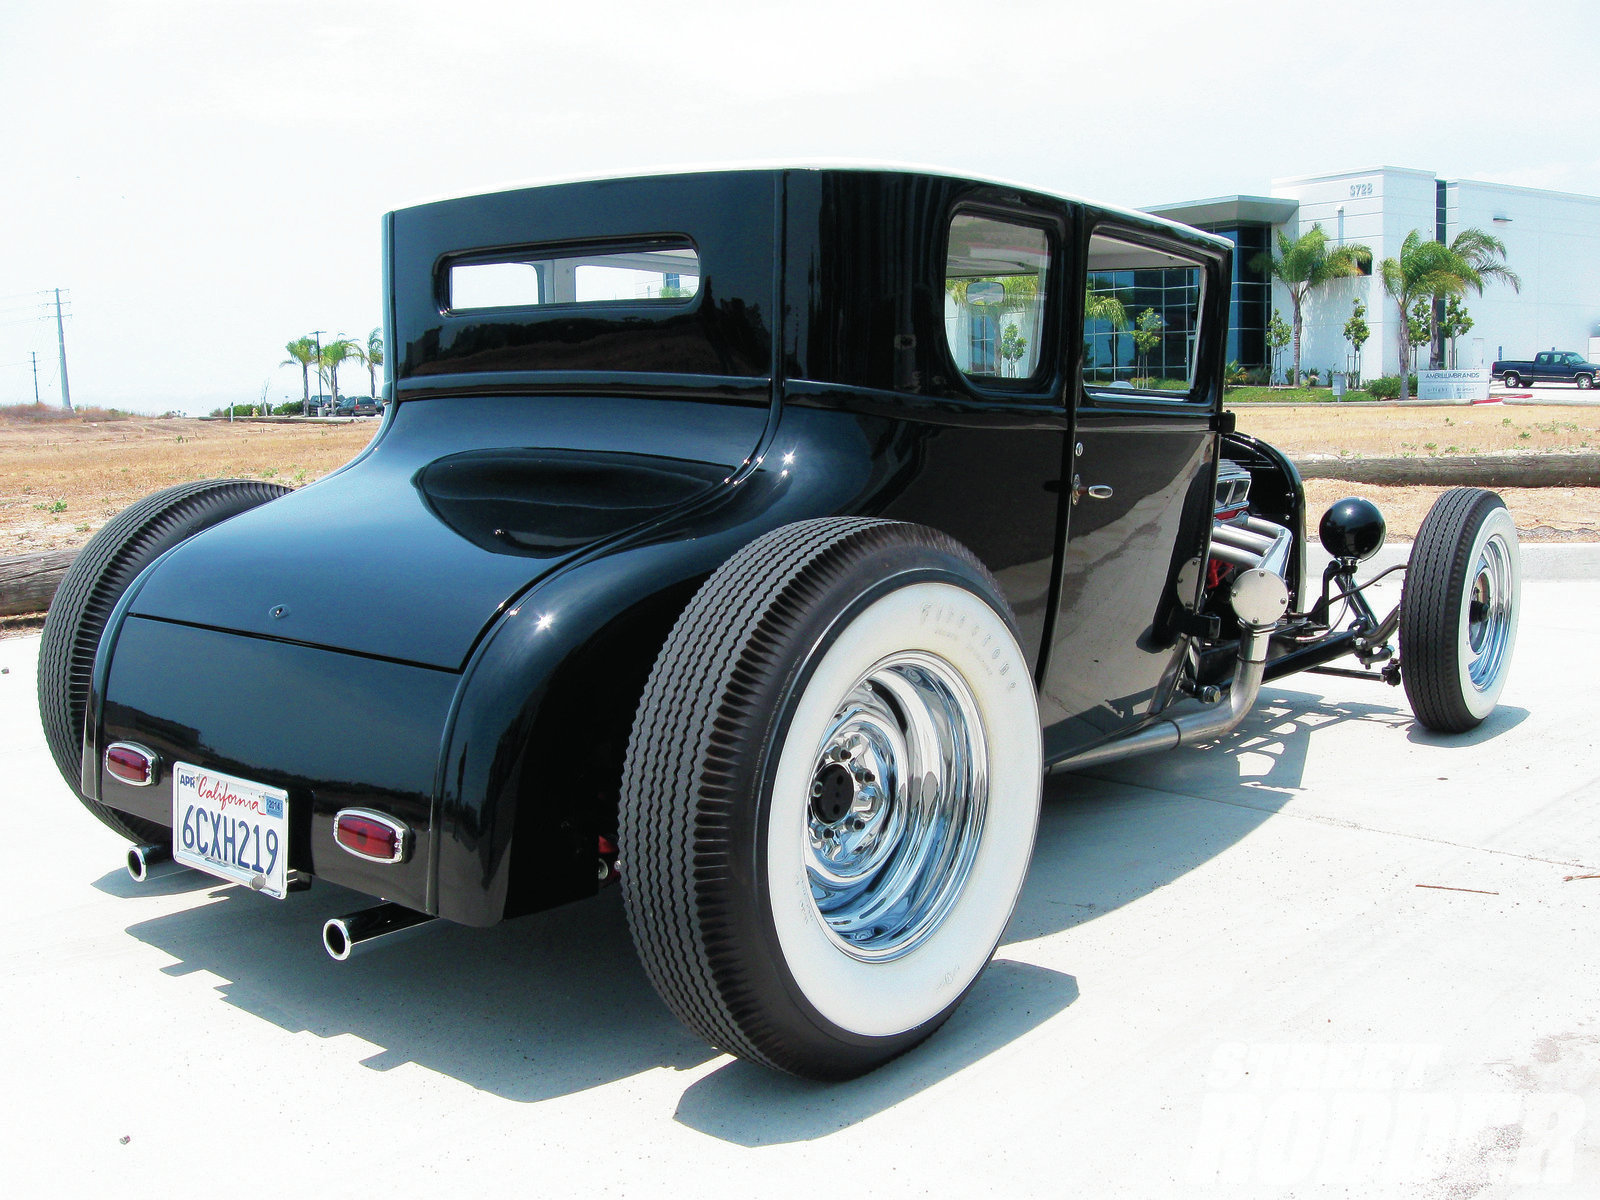 Jay's T is chopped 8 inches and channeled 4 inches over a Model A chassis he modified.